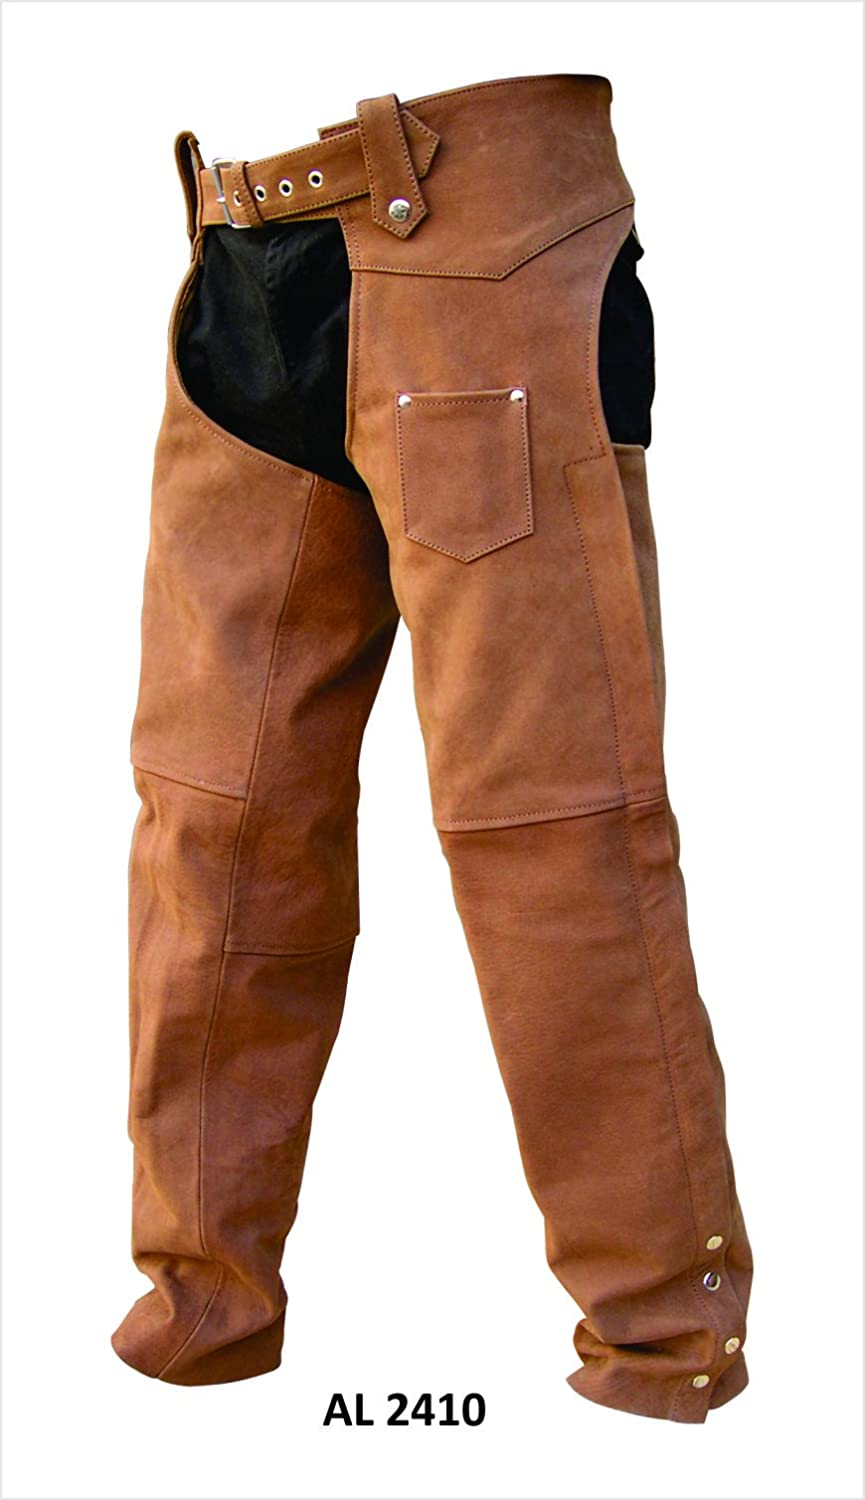 YKK hardware Unisex Heavy Duty BROWN Premium Buffalo Leather Motorcycle Chaps inner-lining